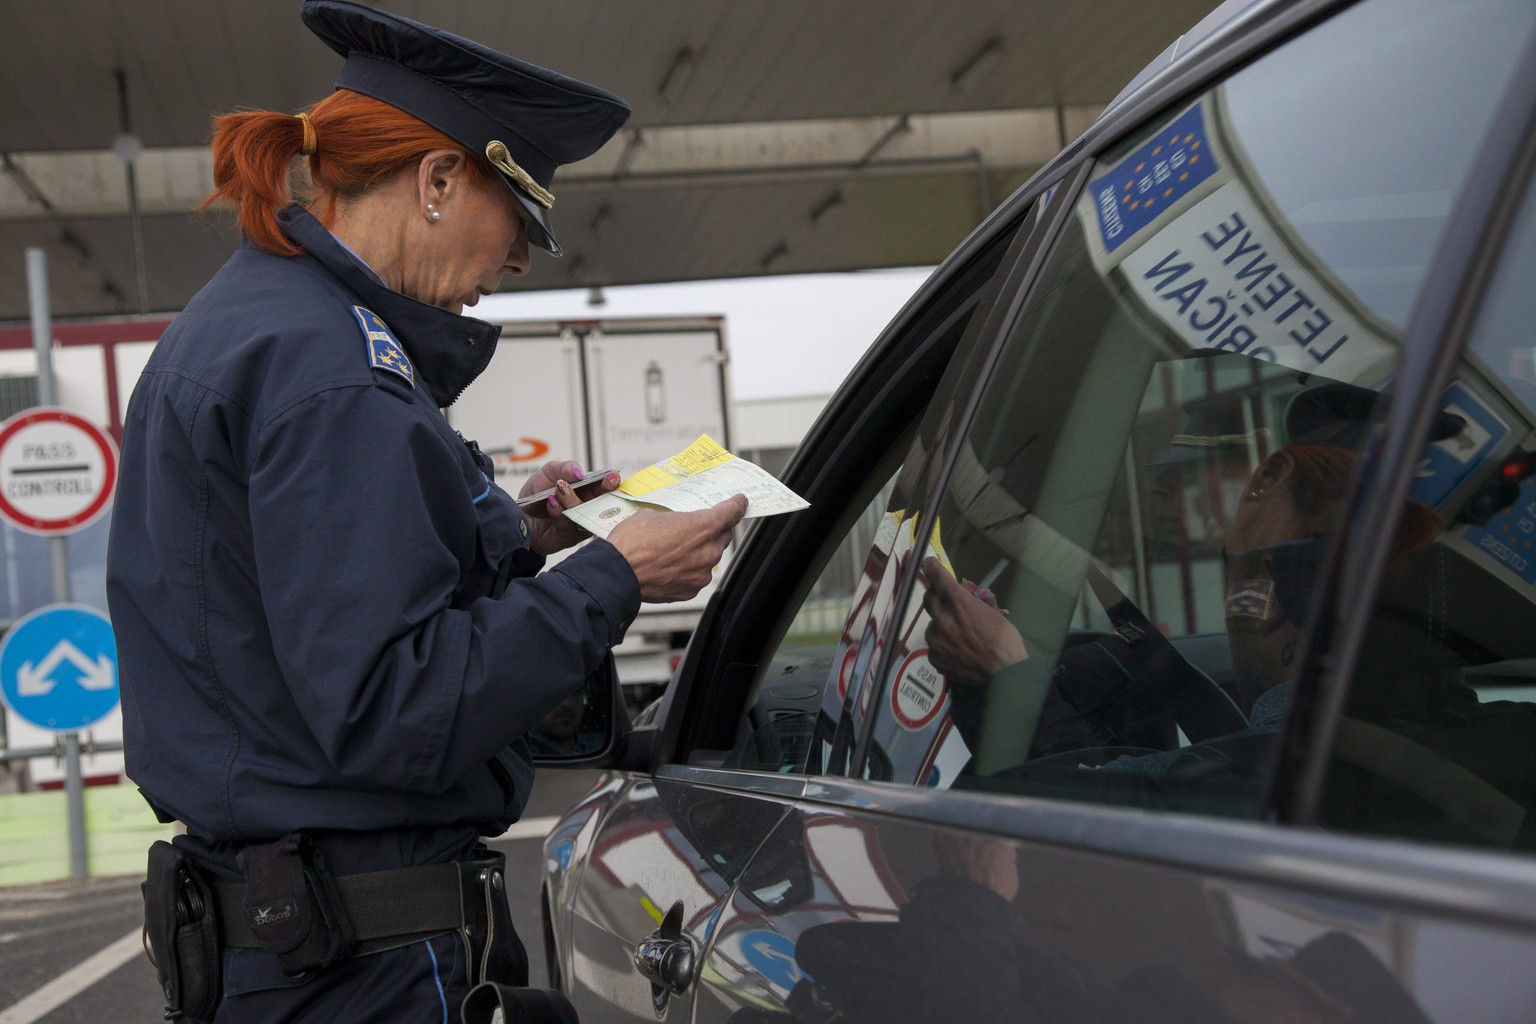 epa05893945 A Hungarian border police officer checks the travel documents of motorists on the first day more stringent provisions of the Schengen Borders Code are applied, at the Hungarian-Croatian border checkpoint of Letenye, 232 kms southwest of Budapest, Hungary, 07 April 2017. The change of regulations requires all EU member states to check every person entering or leaving the Schengen territory.  EPA/GYORGY VARGA HUNGARY OUT